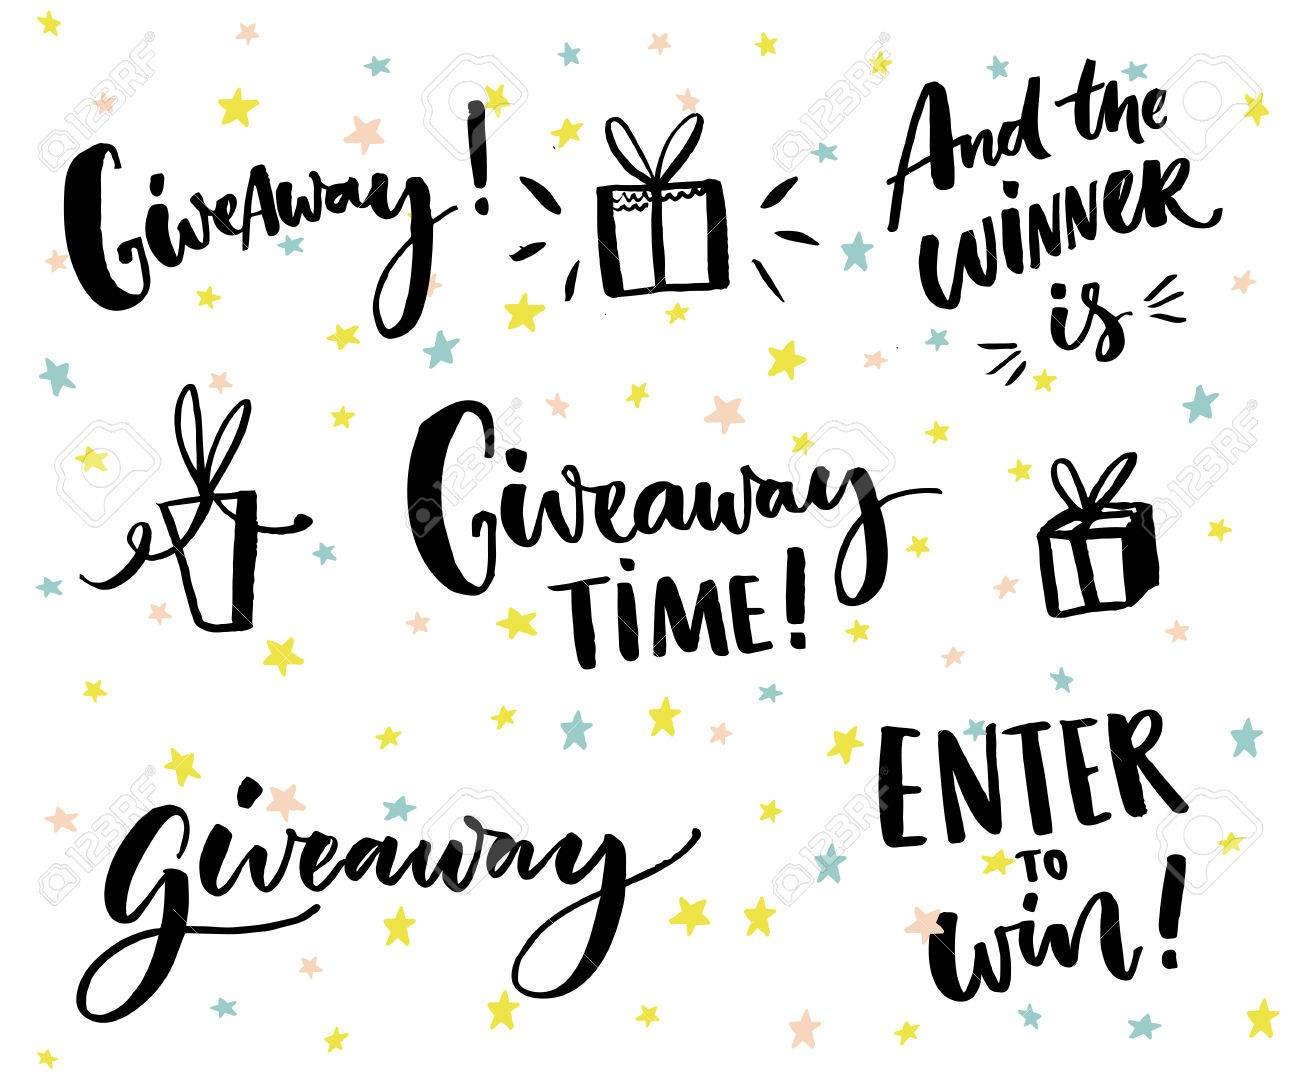 Giveaway text and design elements. Set of handwritten lettering and hand drawn gifts. Social media contest typography. Give away time, enter to win, end the winner is - 67044901